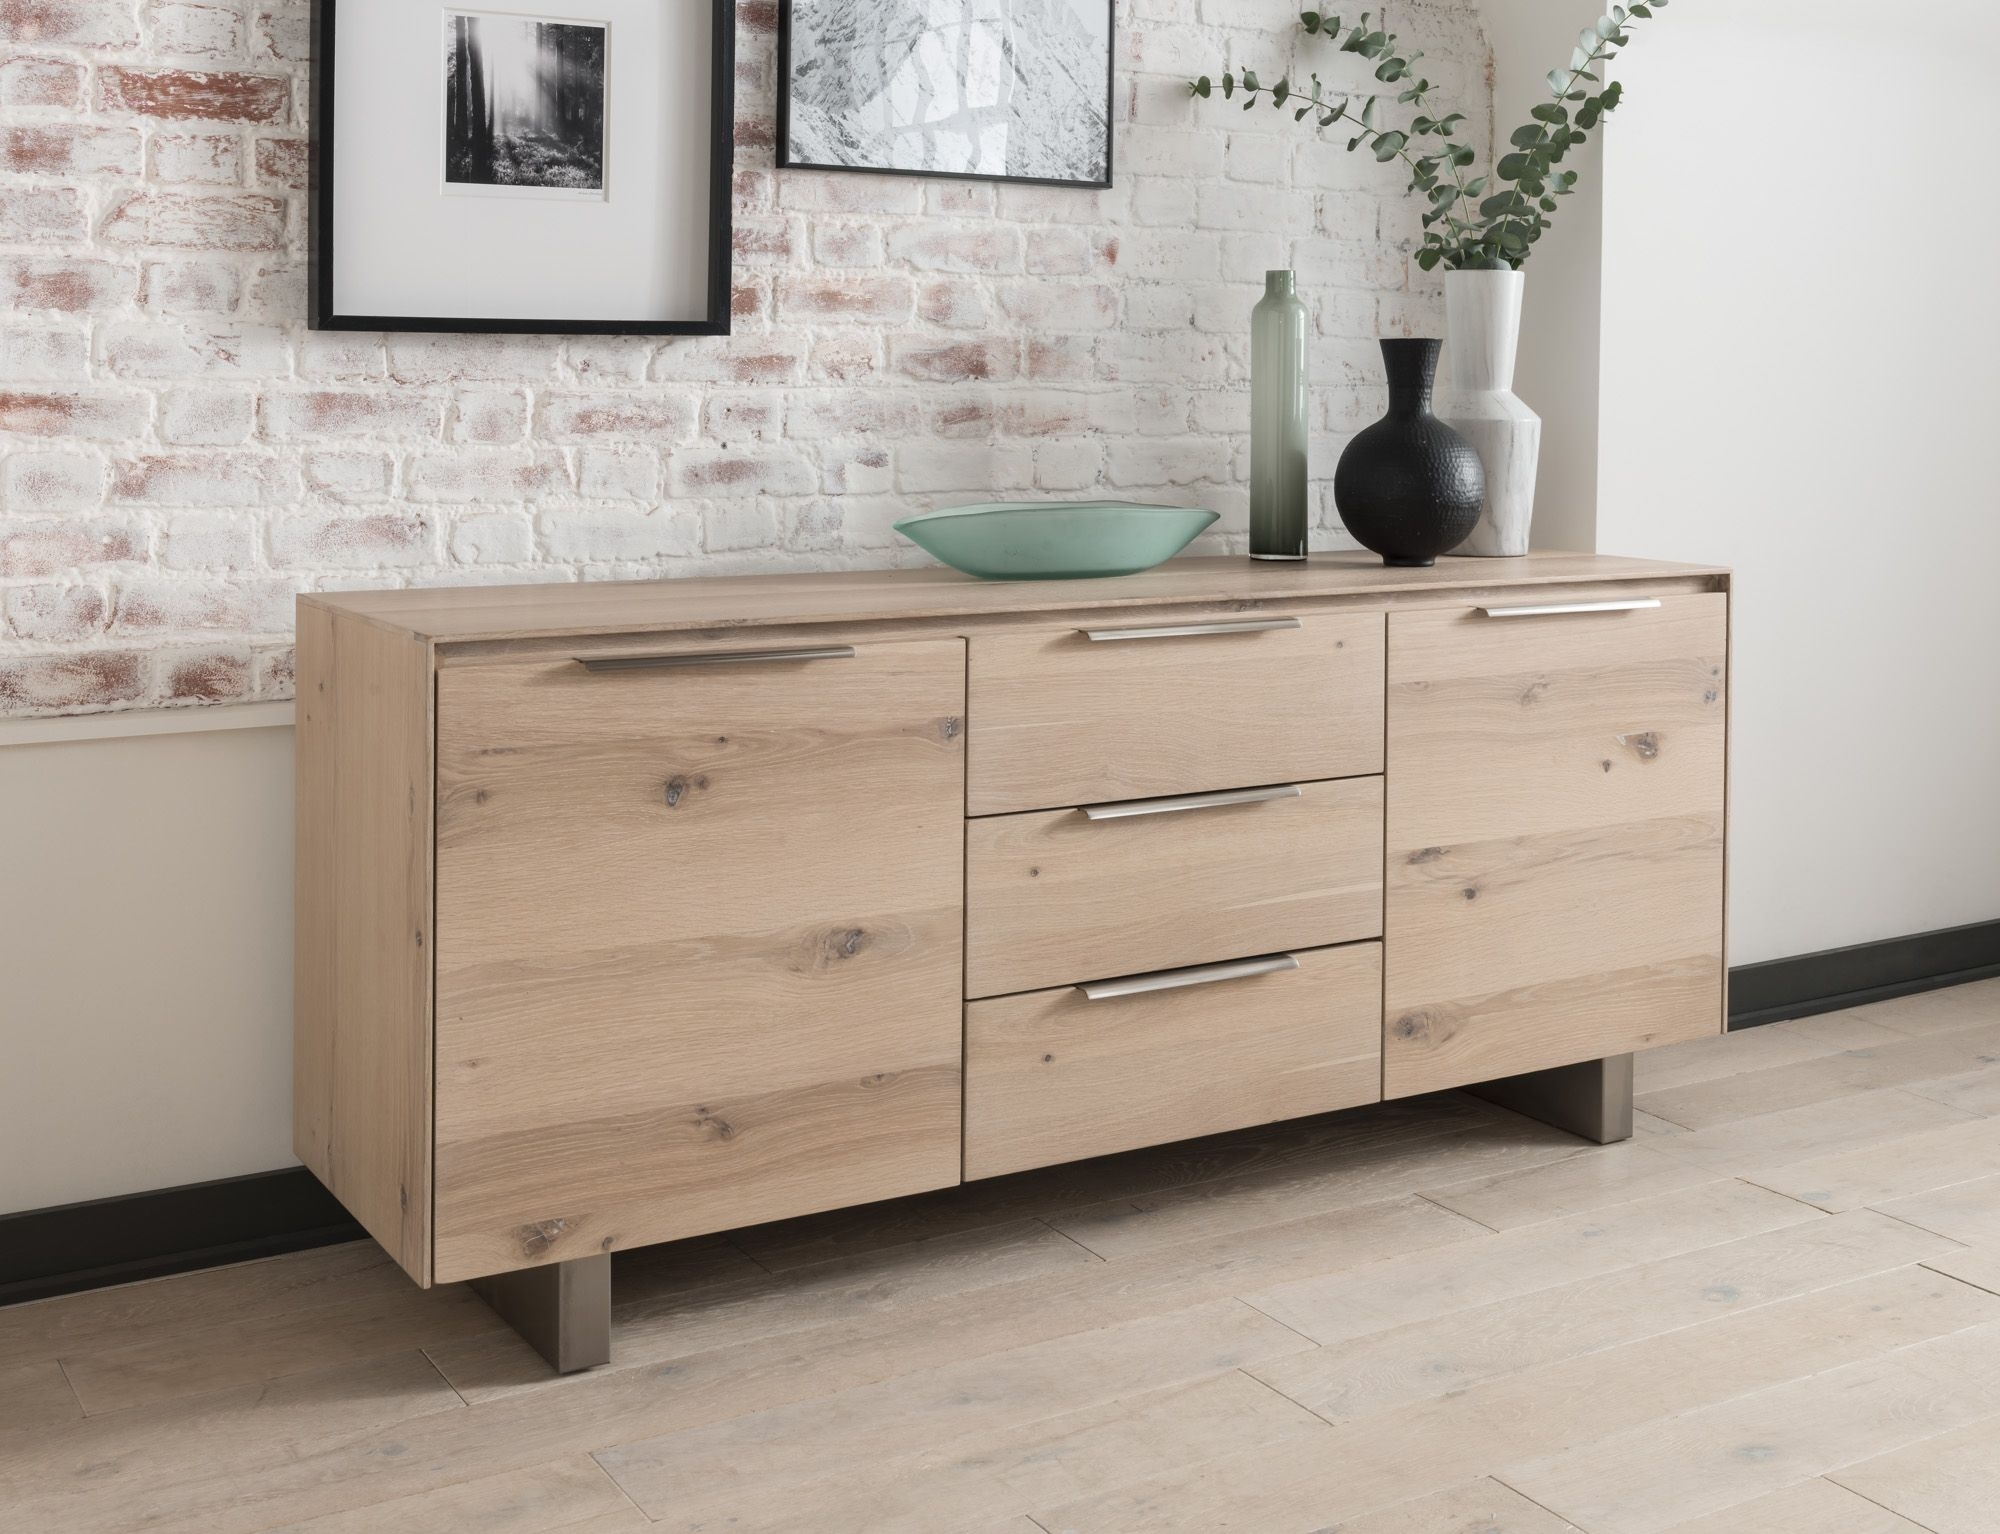 Capua White Washed Oak Sideboard 18Vd175 Within 3 Drawer/2 Door White Wash Sideboards (View 5 of 30)